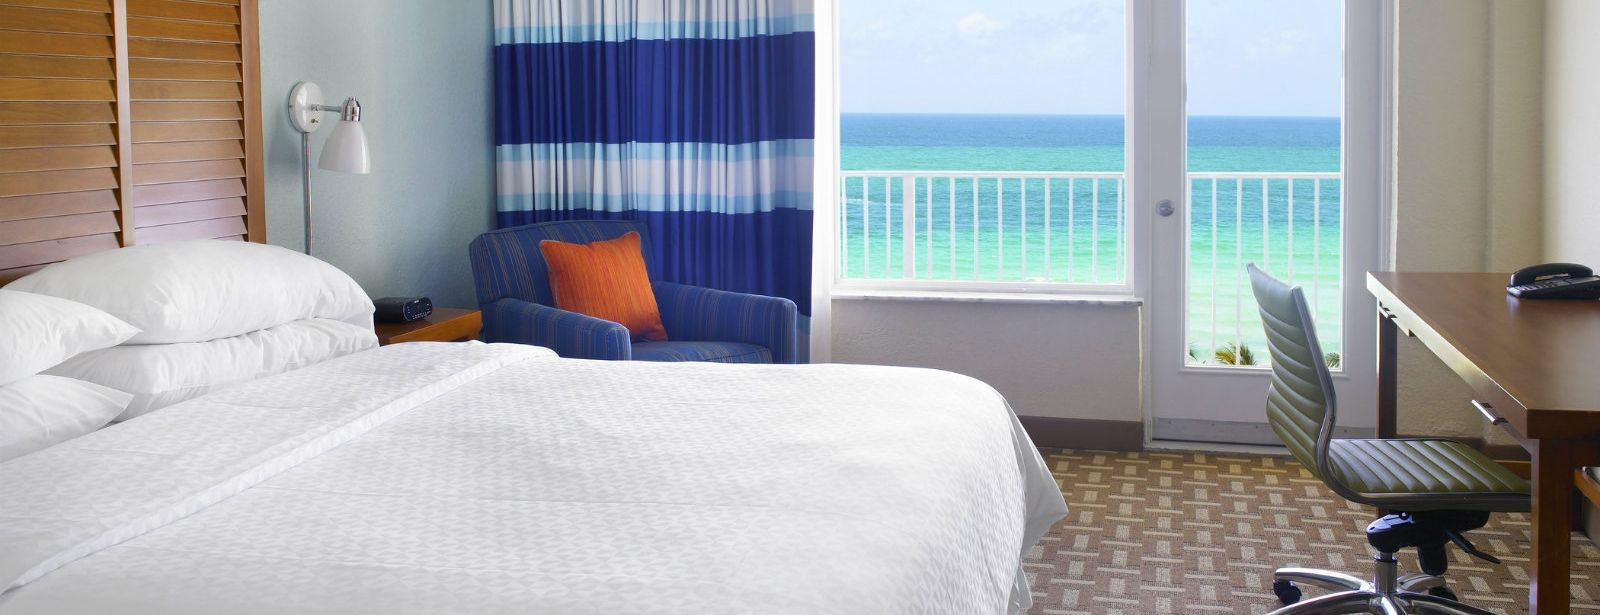 Miami Beach Accommodations - King Junior Suite